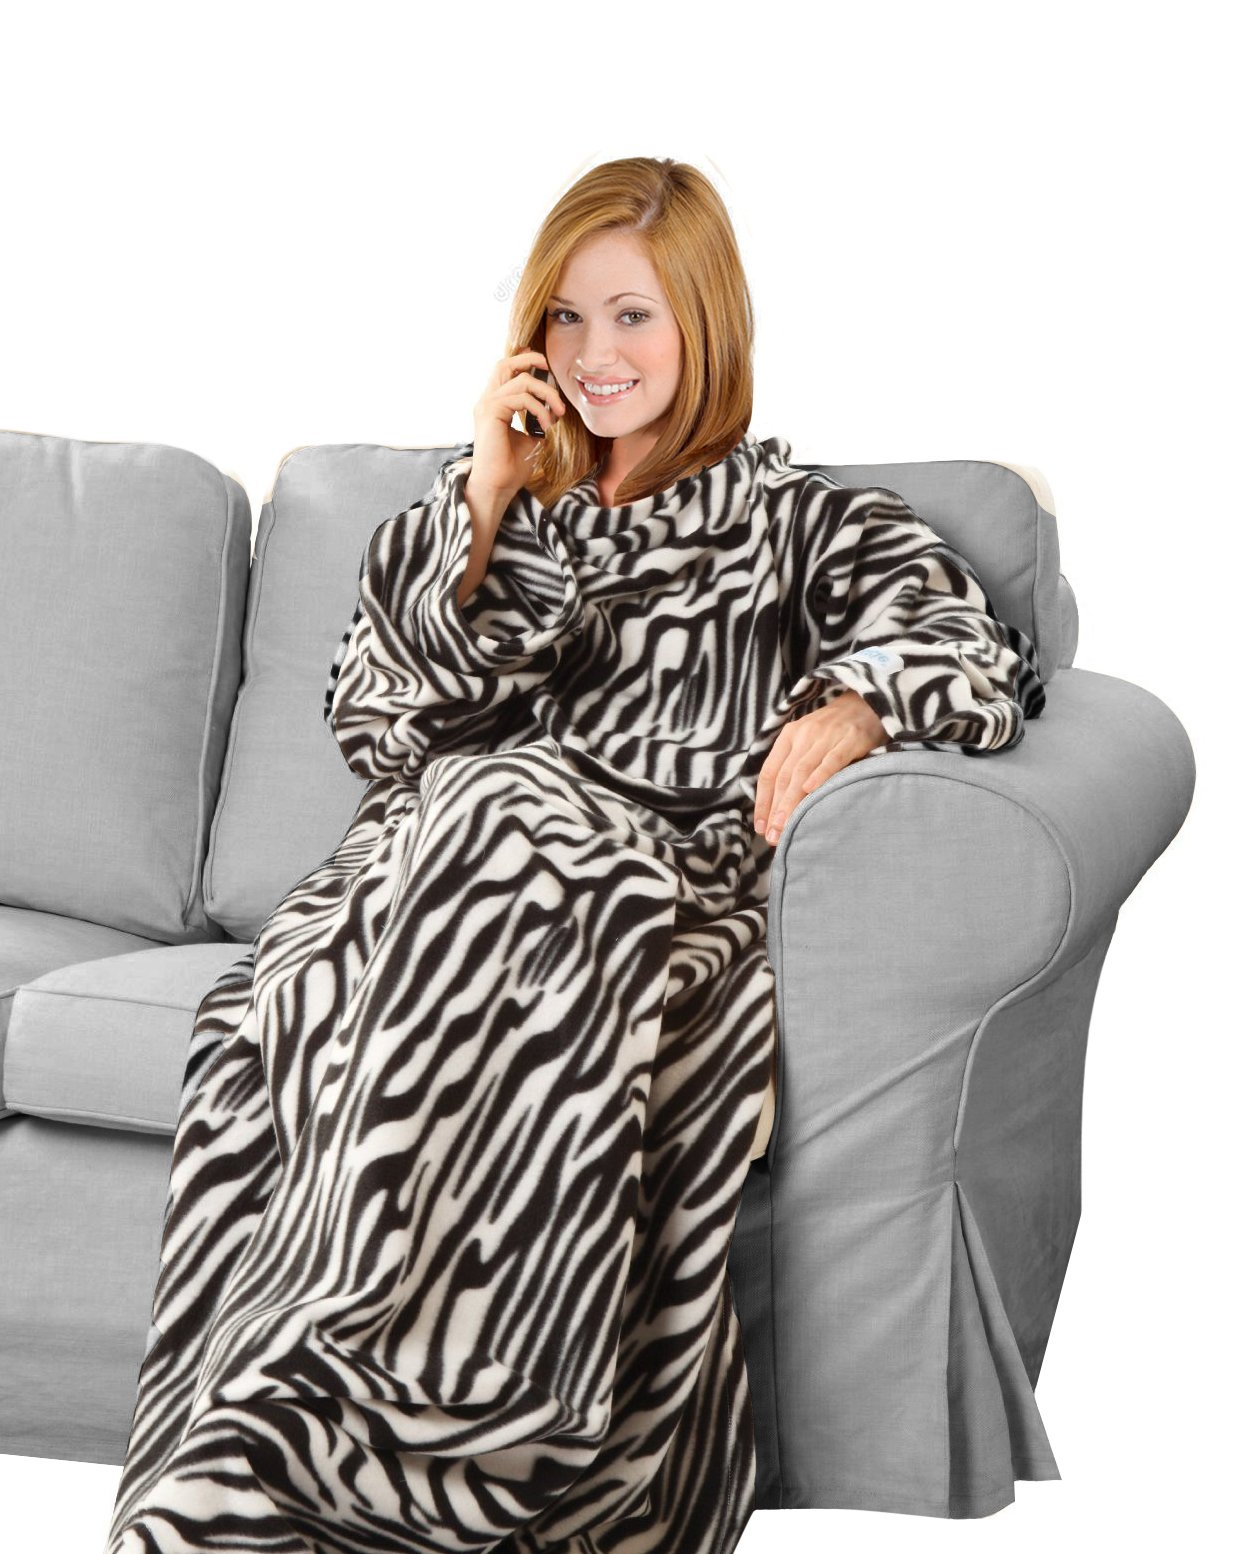 KC Caps Super Soft Fleece Blanket with Sleeves and Pockets, Super Cozy Microplush Wearable Throw for Women and Men Adult Comfy Throw Robe, 53'' x 71'', Zebra